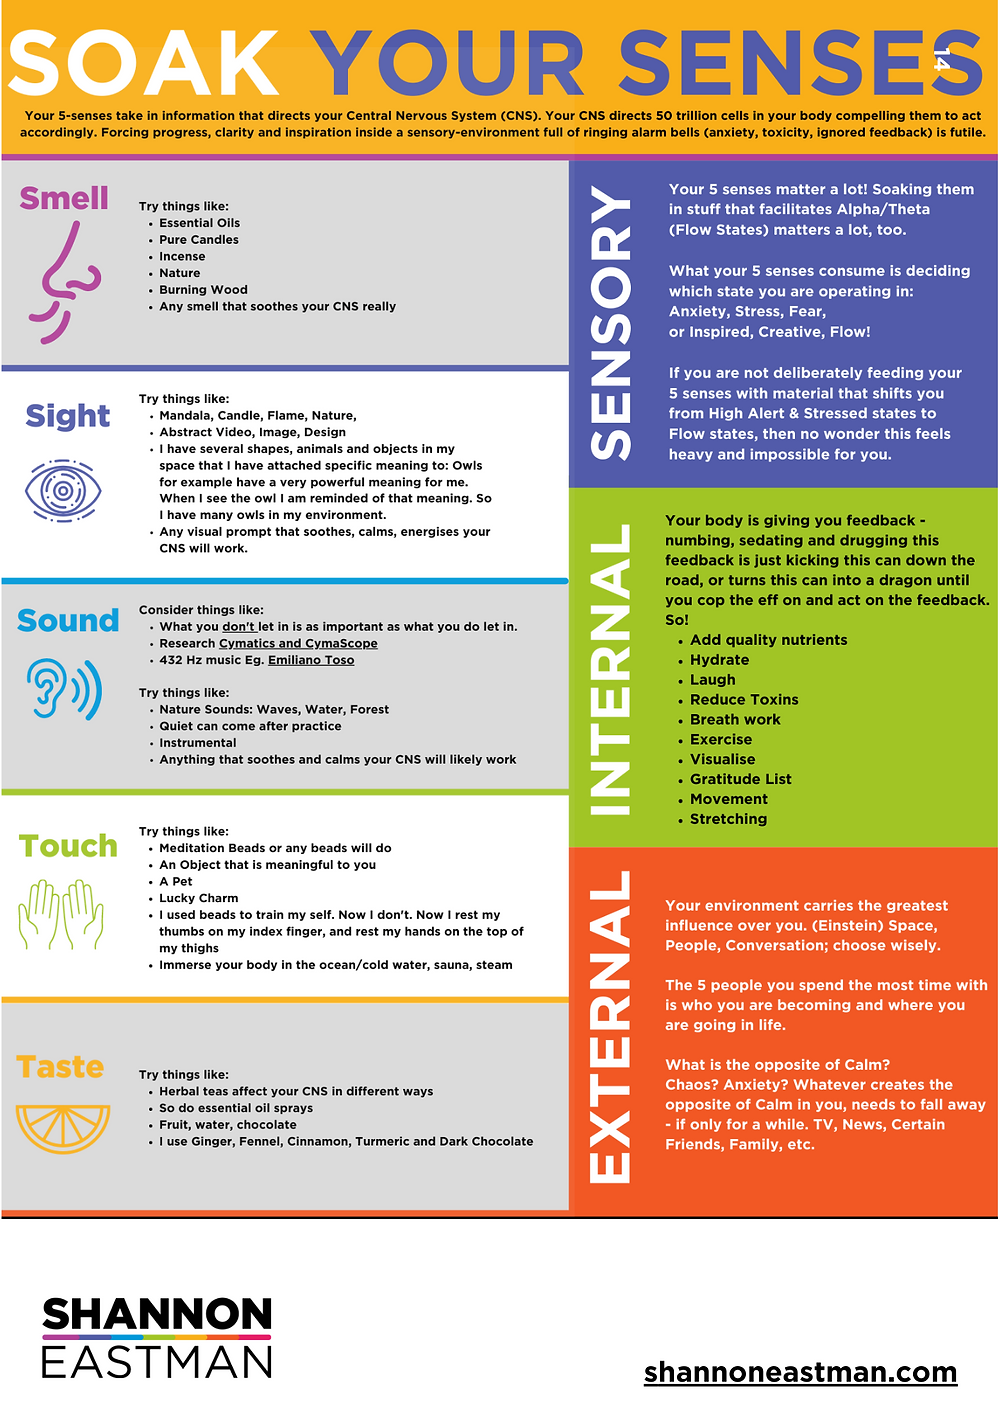 Soak Your Senses Infographic